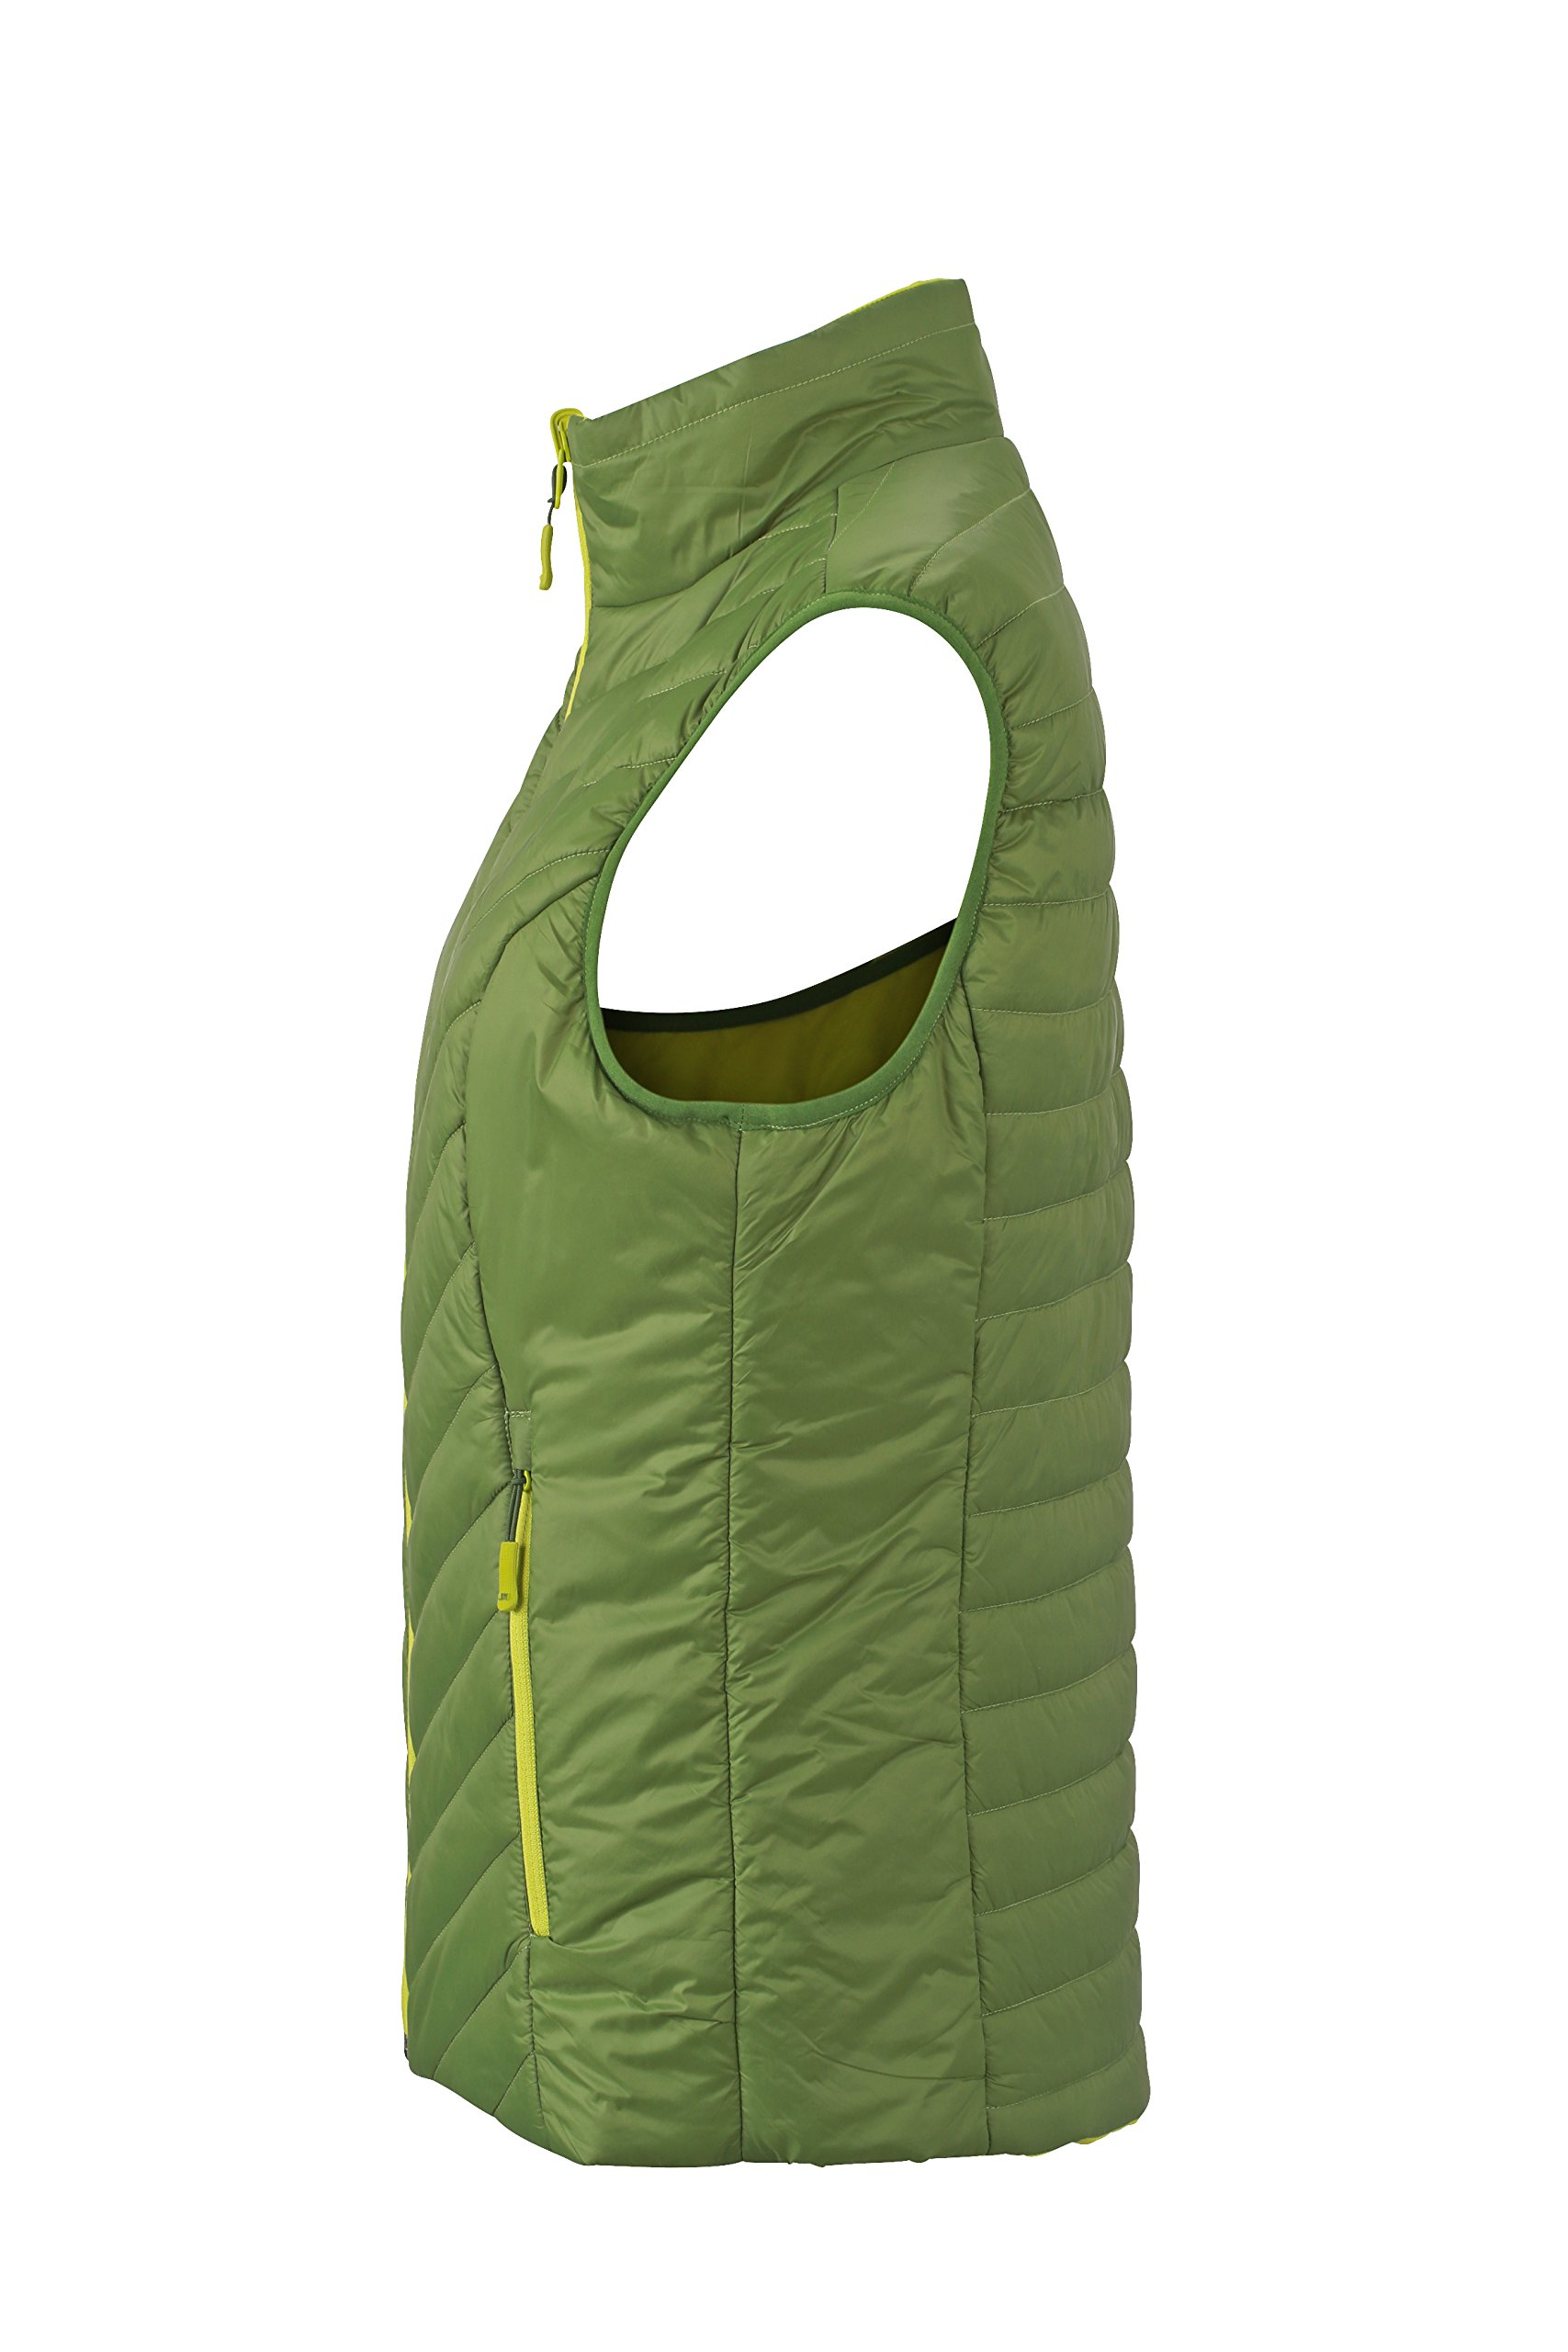 71VRrDH%2BJCL - James & Nicholson Women's Lightweight Vest Outdoor